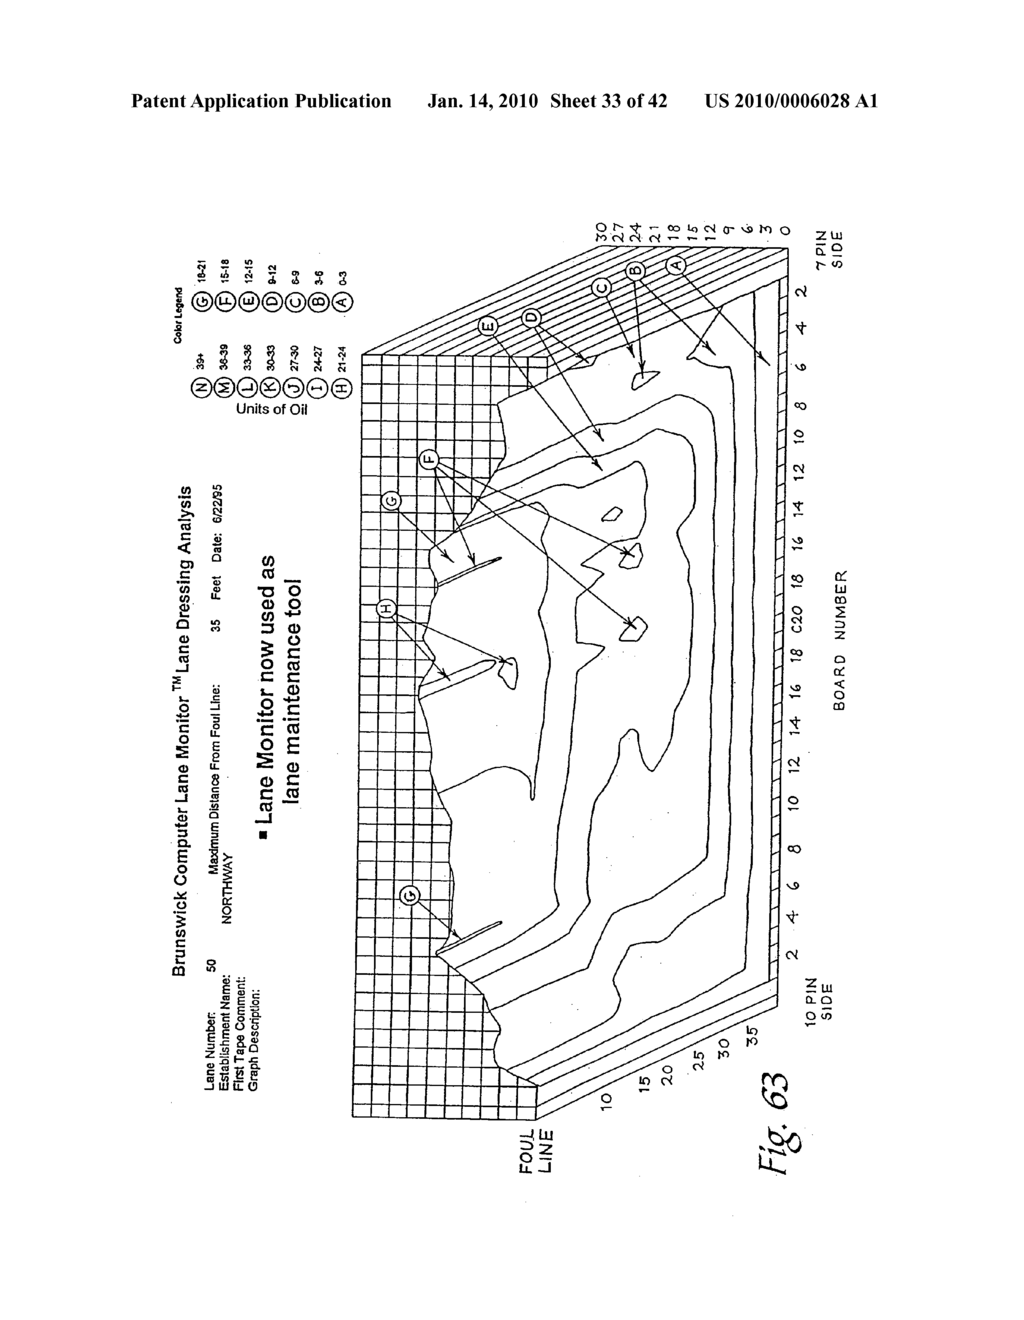 hight resolution of apparatus and method for conditioning a bowling lane using precision delivery injectors diagram schematic and image 34